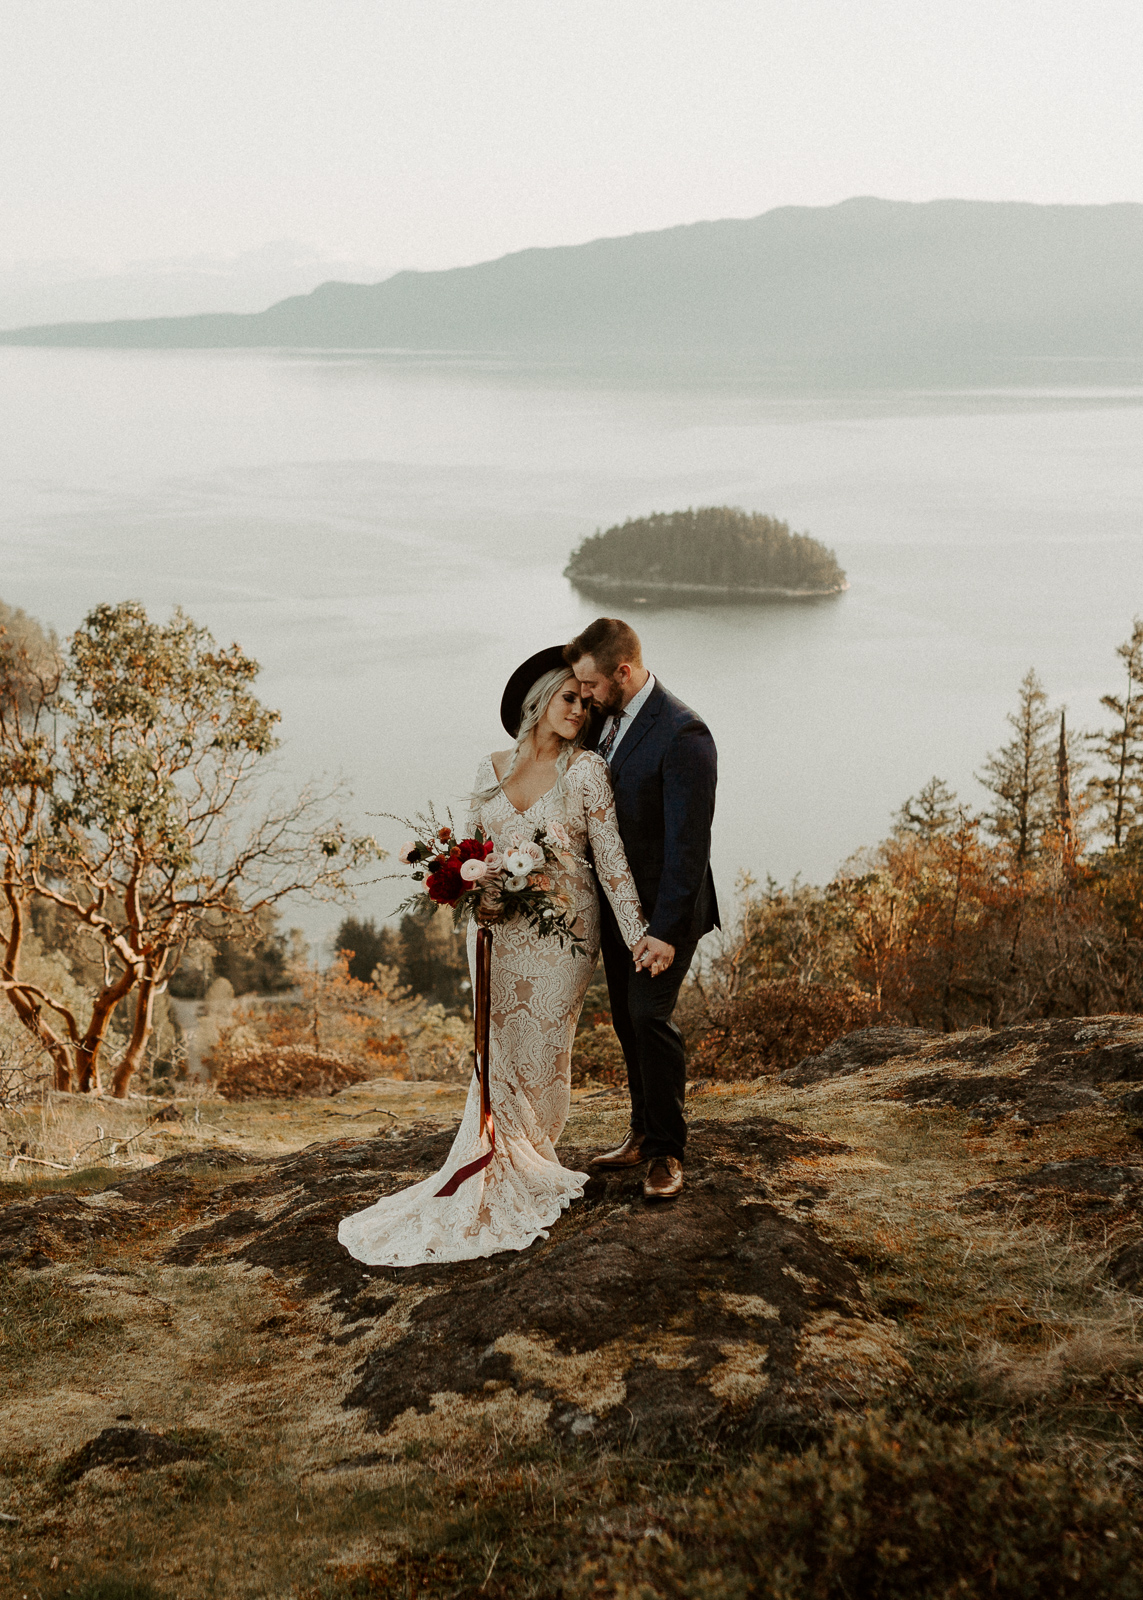 Luke Lambertson Photo_BritishColumbia_Canada_AdventurousCouple_Elopement_IMG-7944-2.jpg